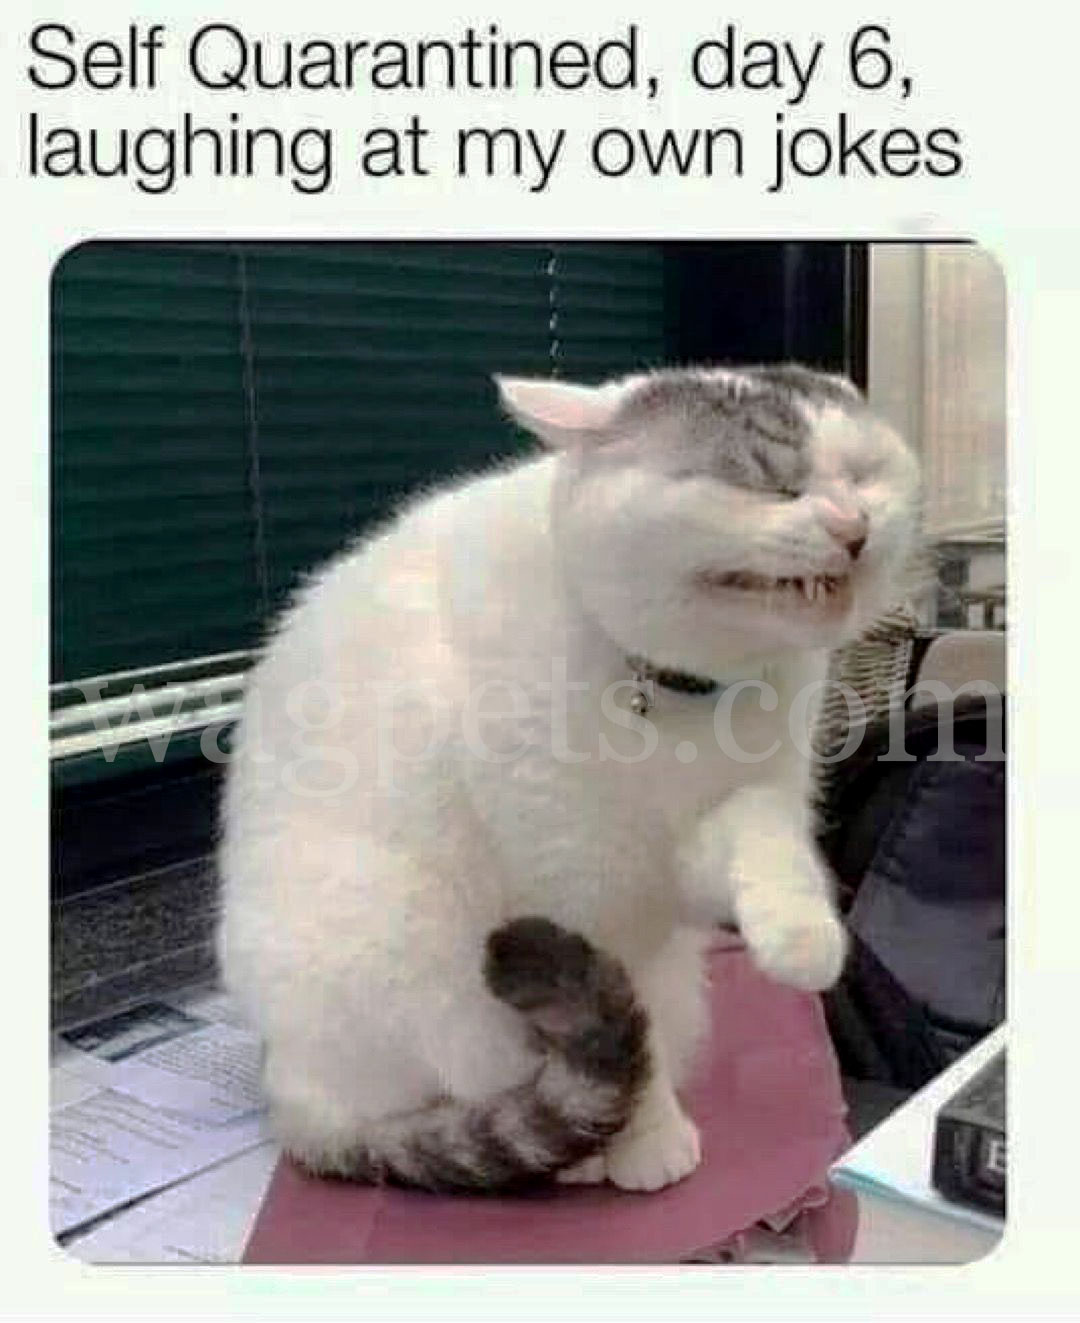 Self-Quarantined, day 6, laughing at my own jokes